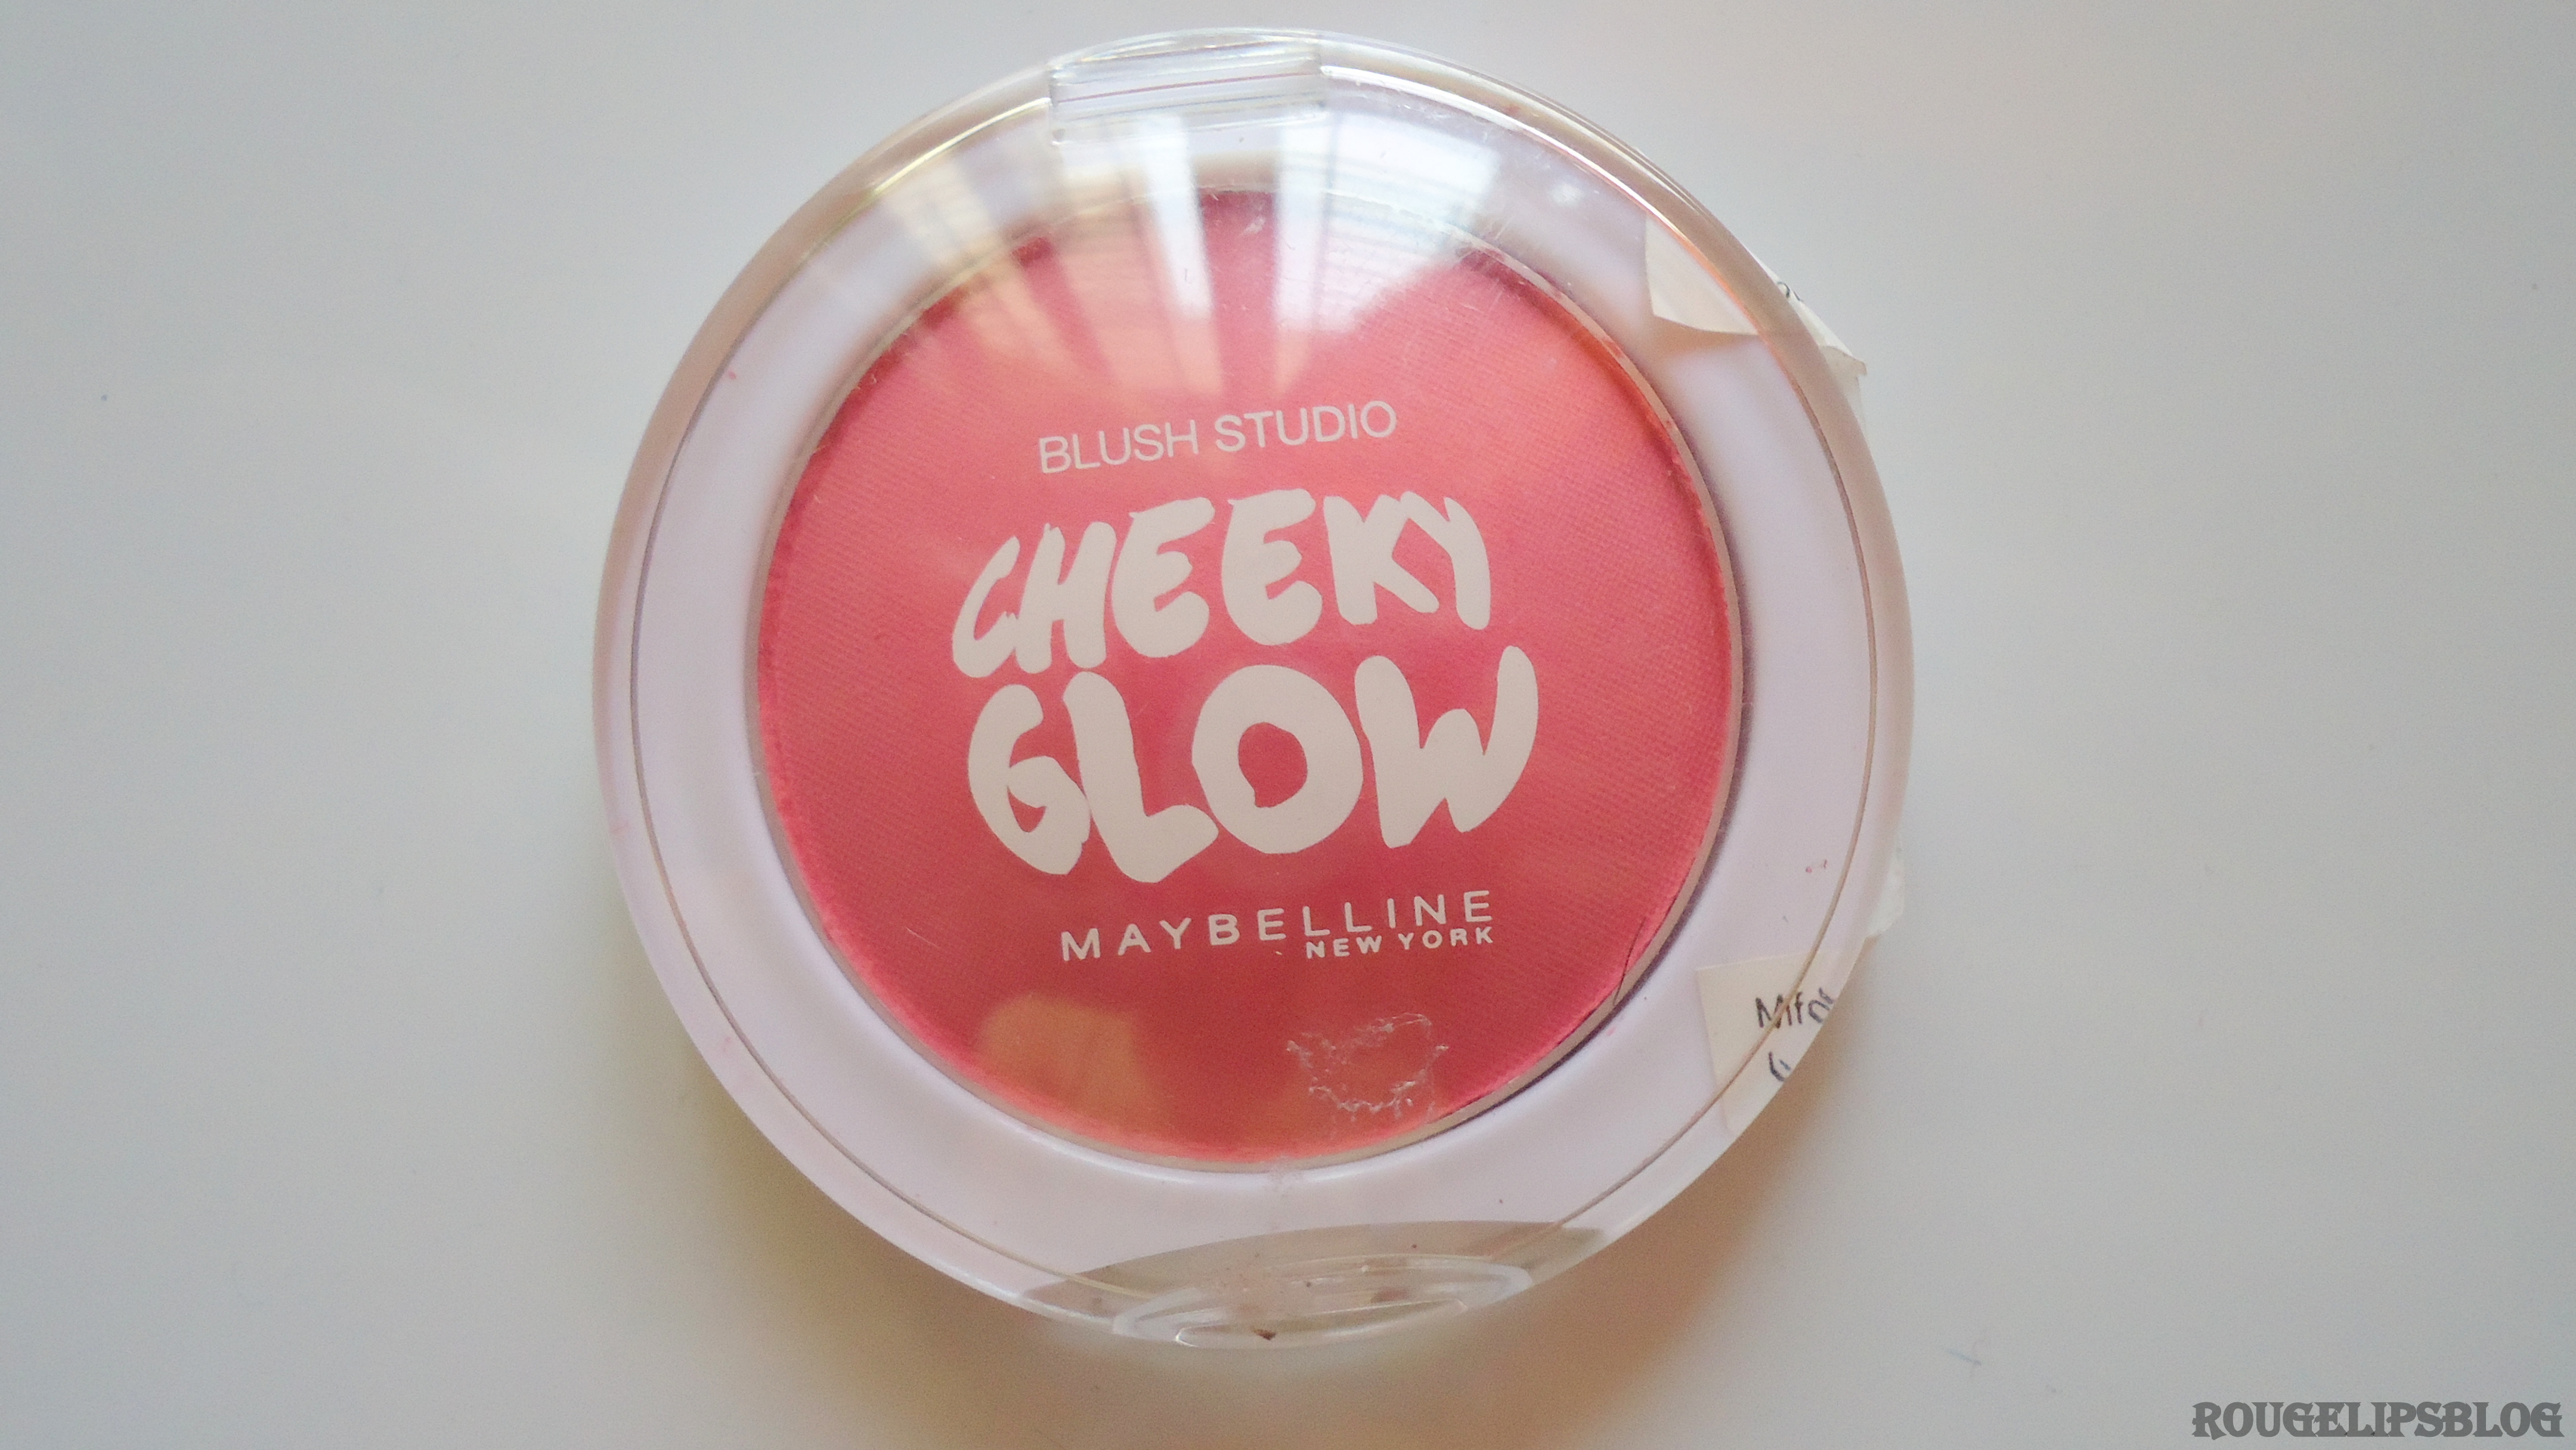 Maybelline Blush Studio Cheeky Glow Blush in the Shade Fresh Coral!